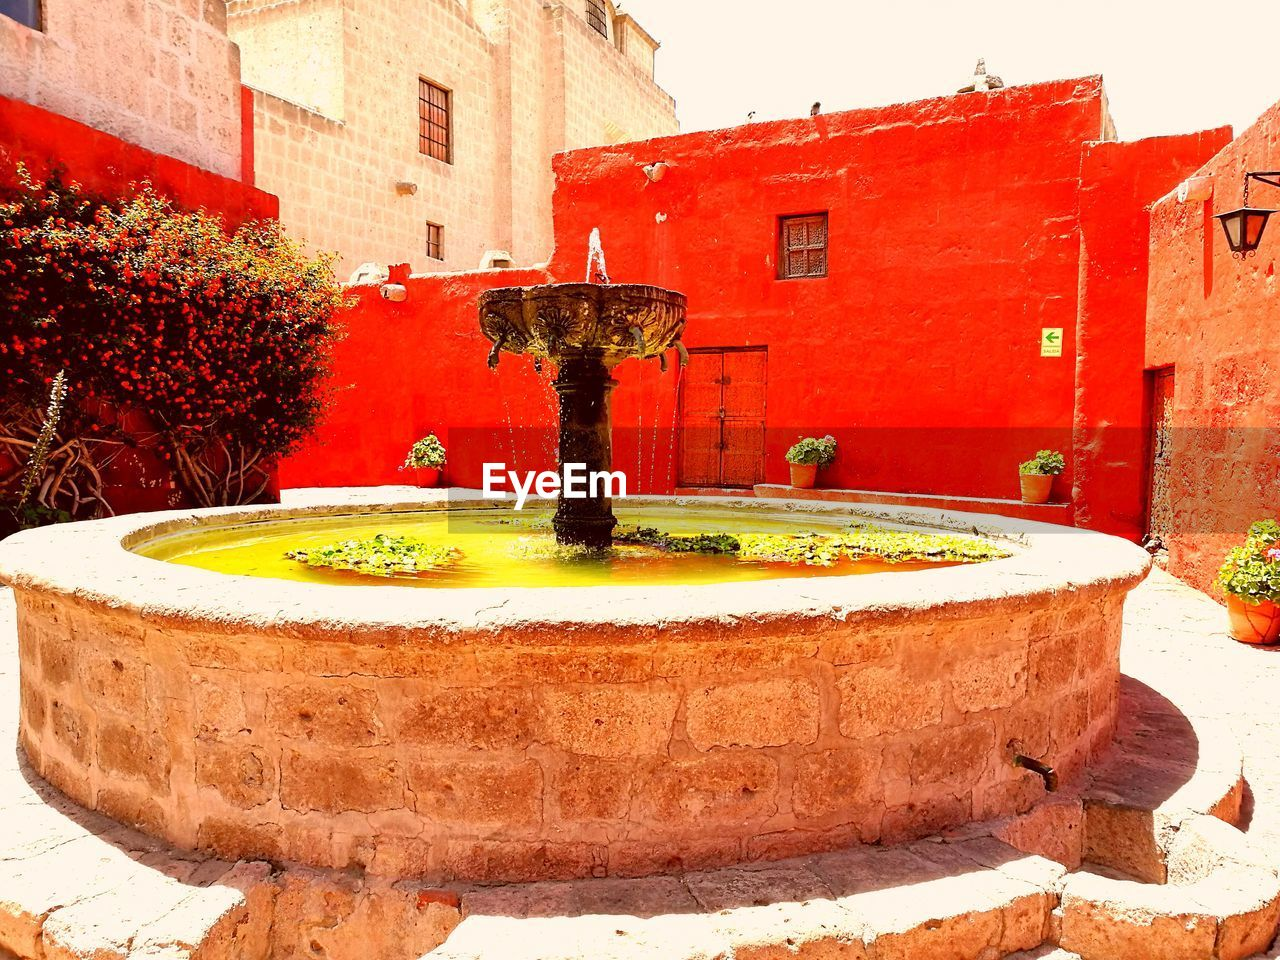 fountain, architecture, water, building exterior, built structure, red, no people, drinking fountain, day, outdoors, tree, close-up